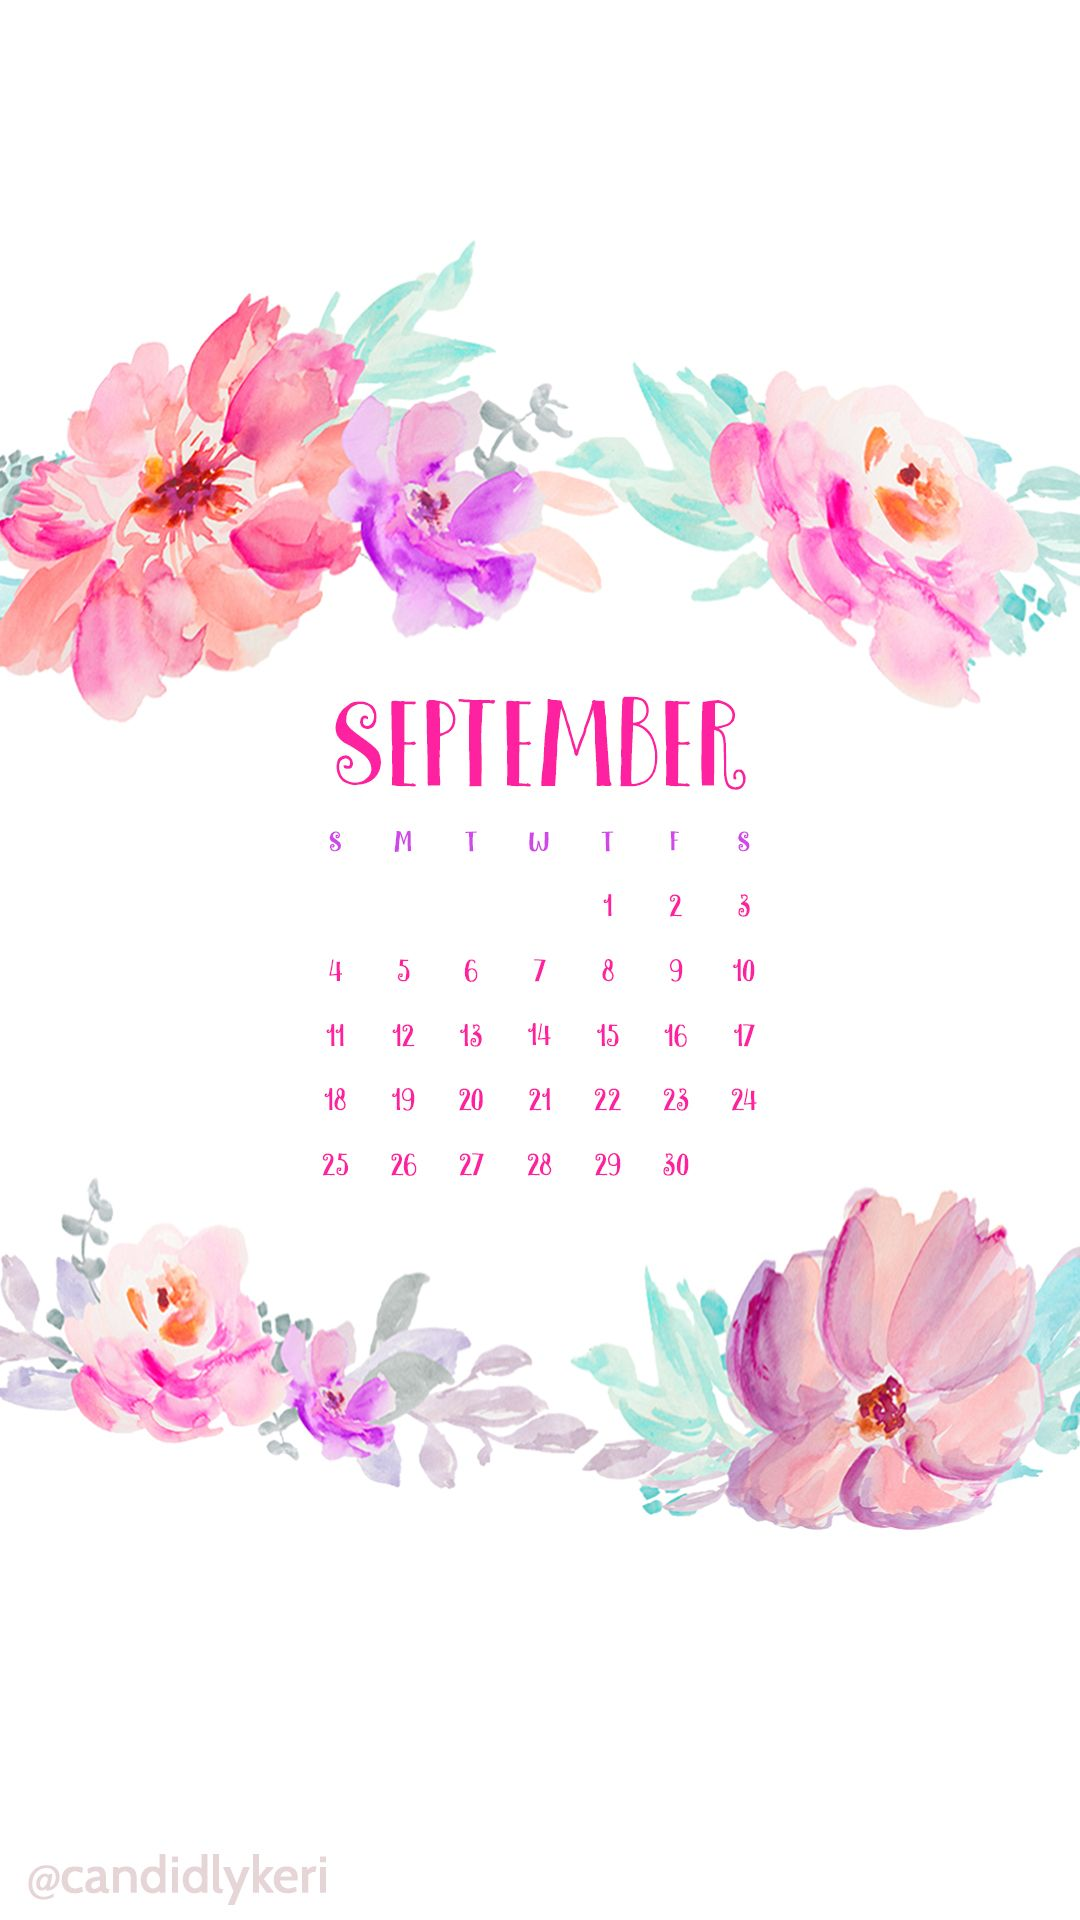 Flower Crown Watercolor September Calendar 2016 Wallpaper You Can